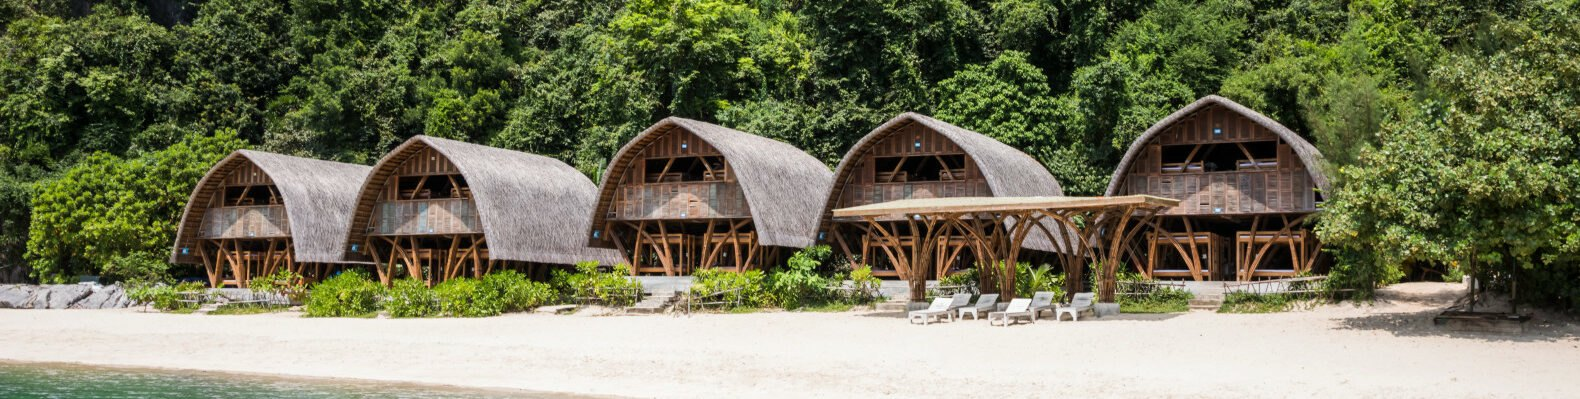 series of thatched roof huts on a remote beach